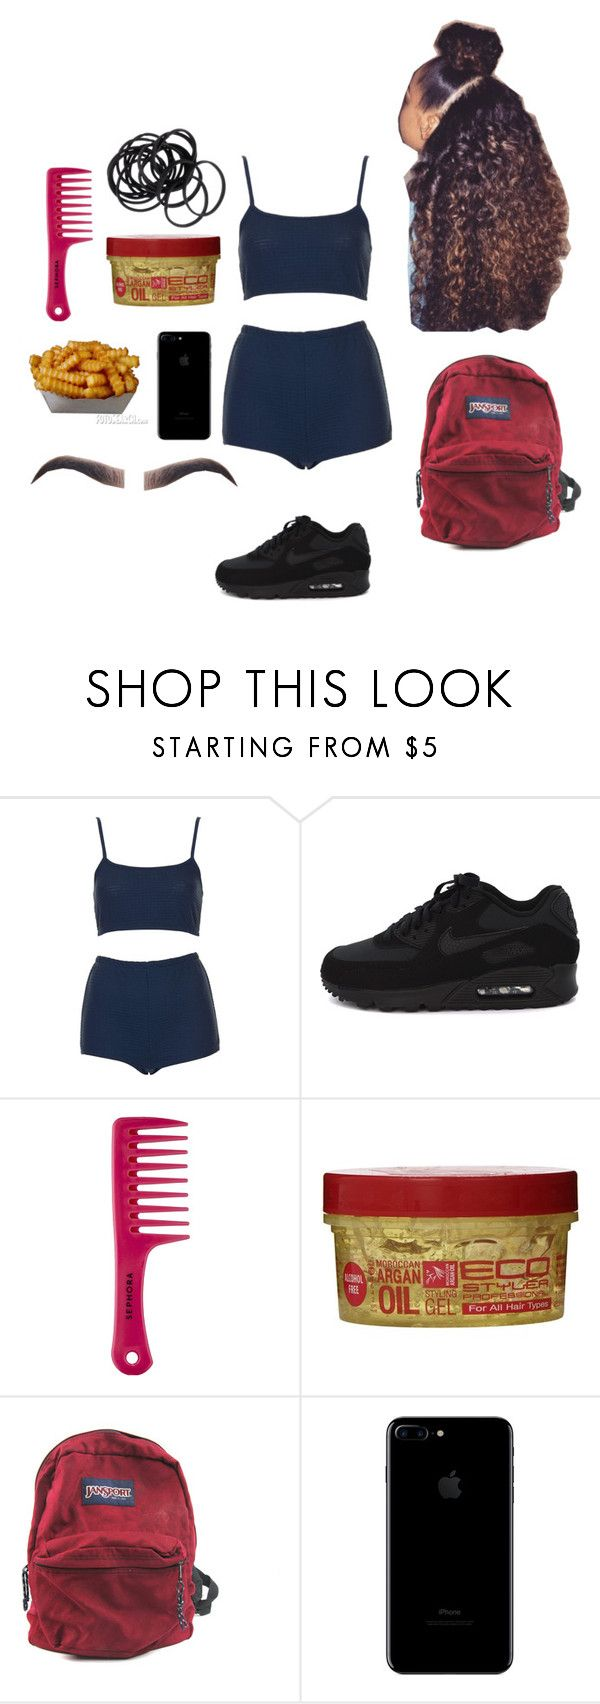 """not in stores xx"" by normatheartist ❤ liked on Polyvore featuring Topshop, NIKE, Sephora Collection, JanSport, Revlon and H&M"